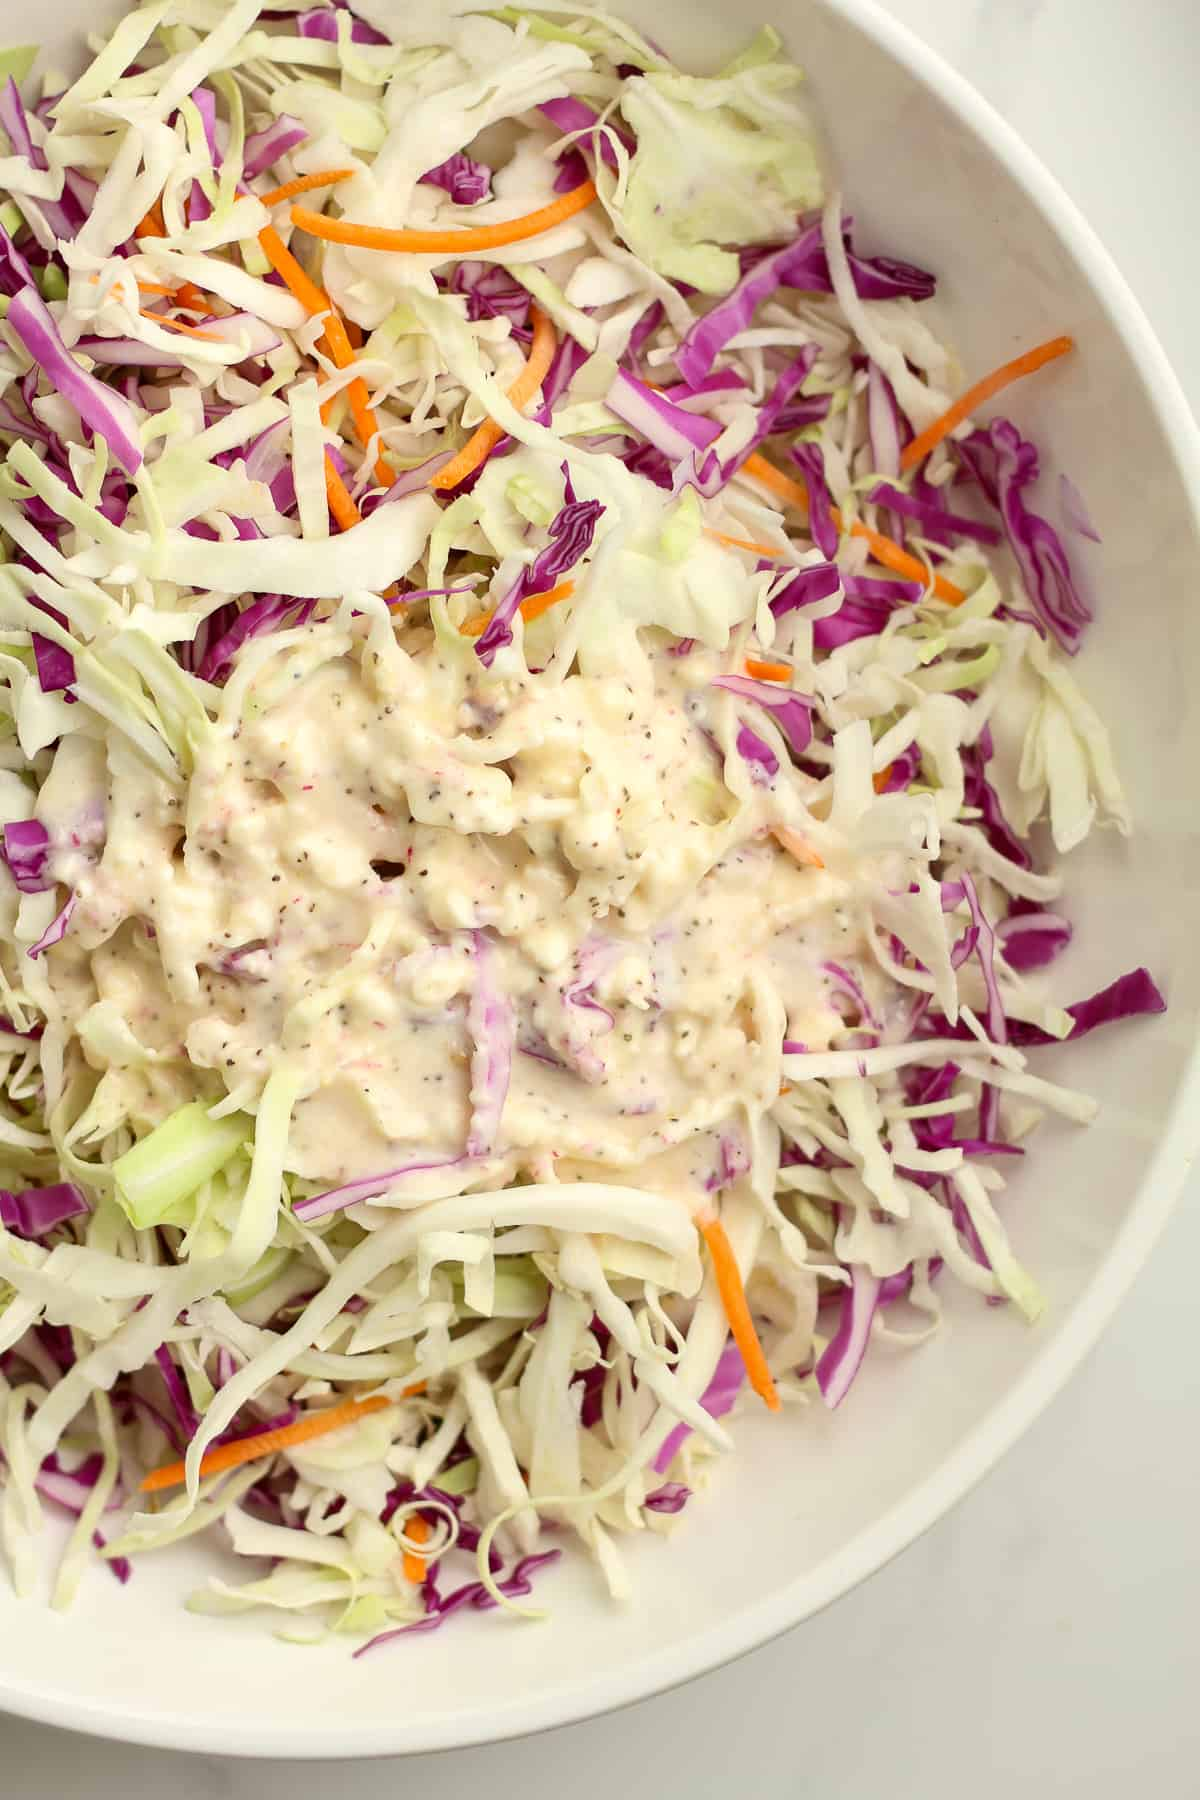 A closeup on the coleslaw with the dressing on top.